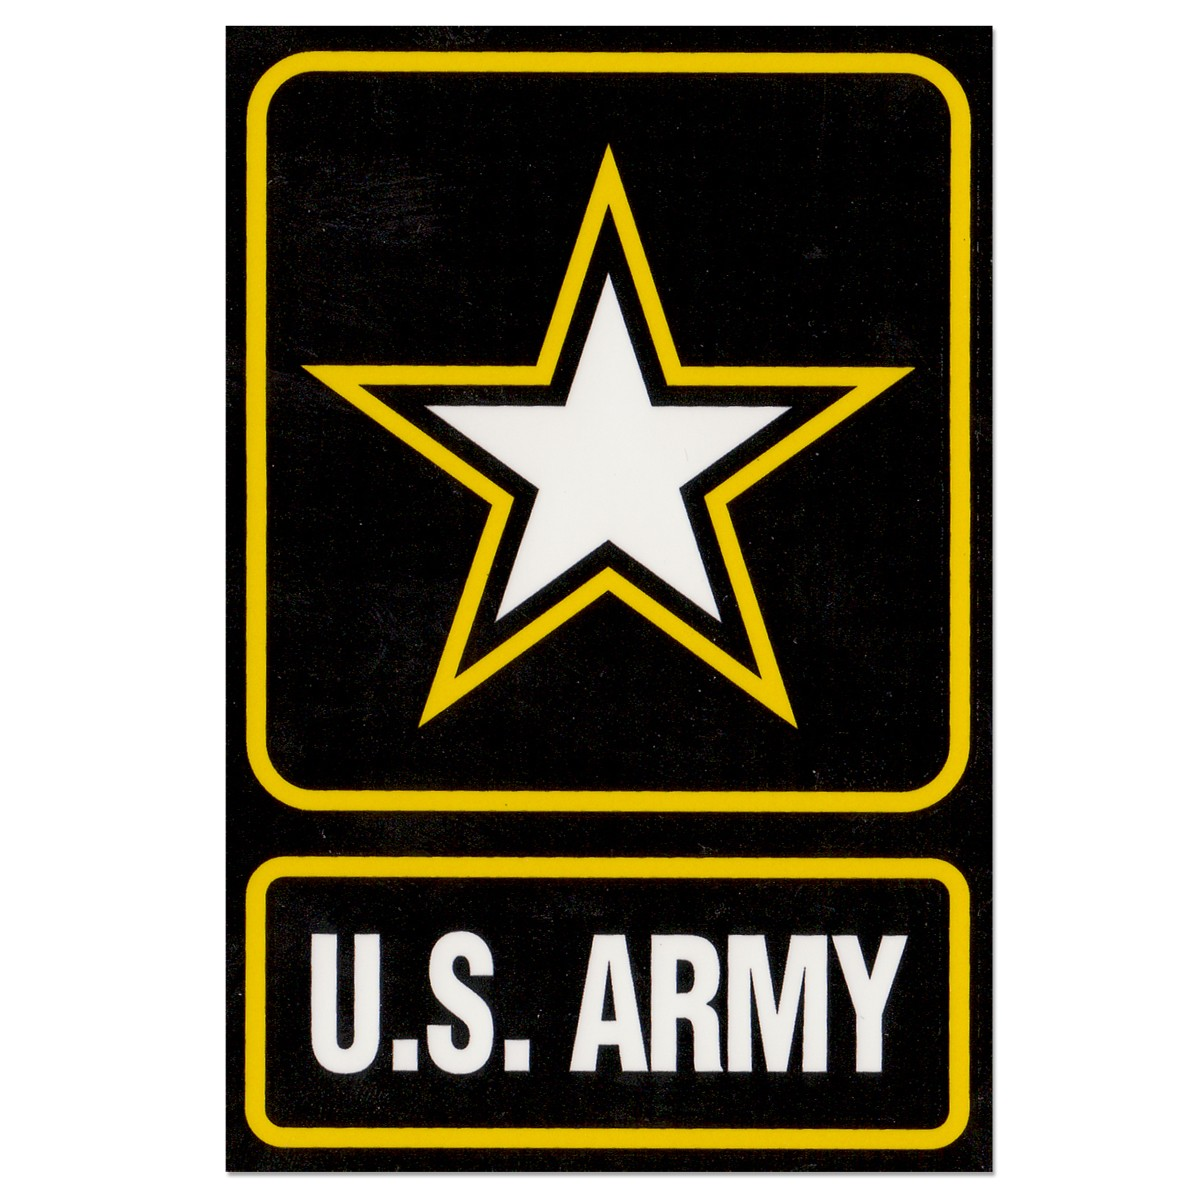 30 Army Logo Clip Art Free Cliparts That-30 Army Logo Clip Art Free Cliparts That You Can Download To You-4